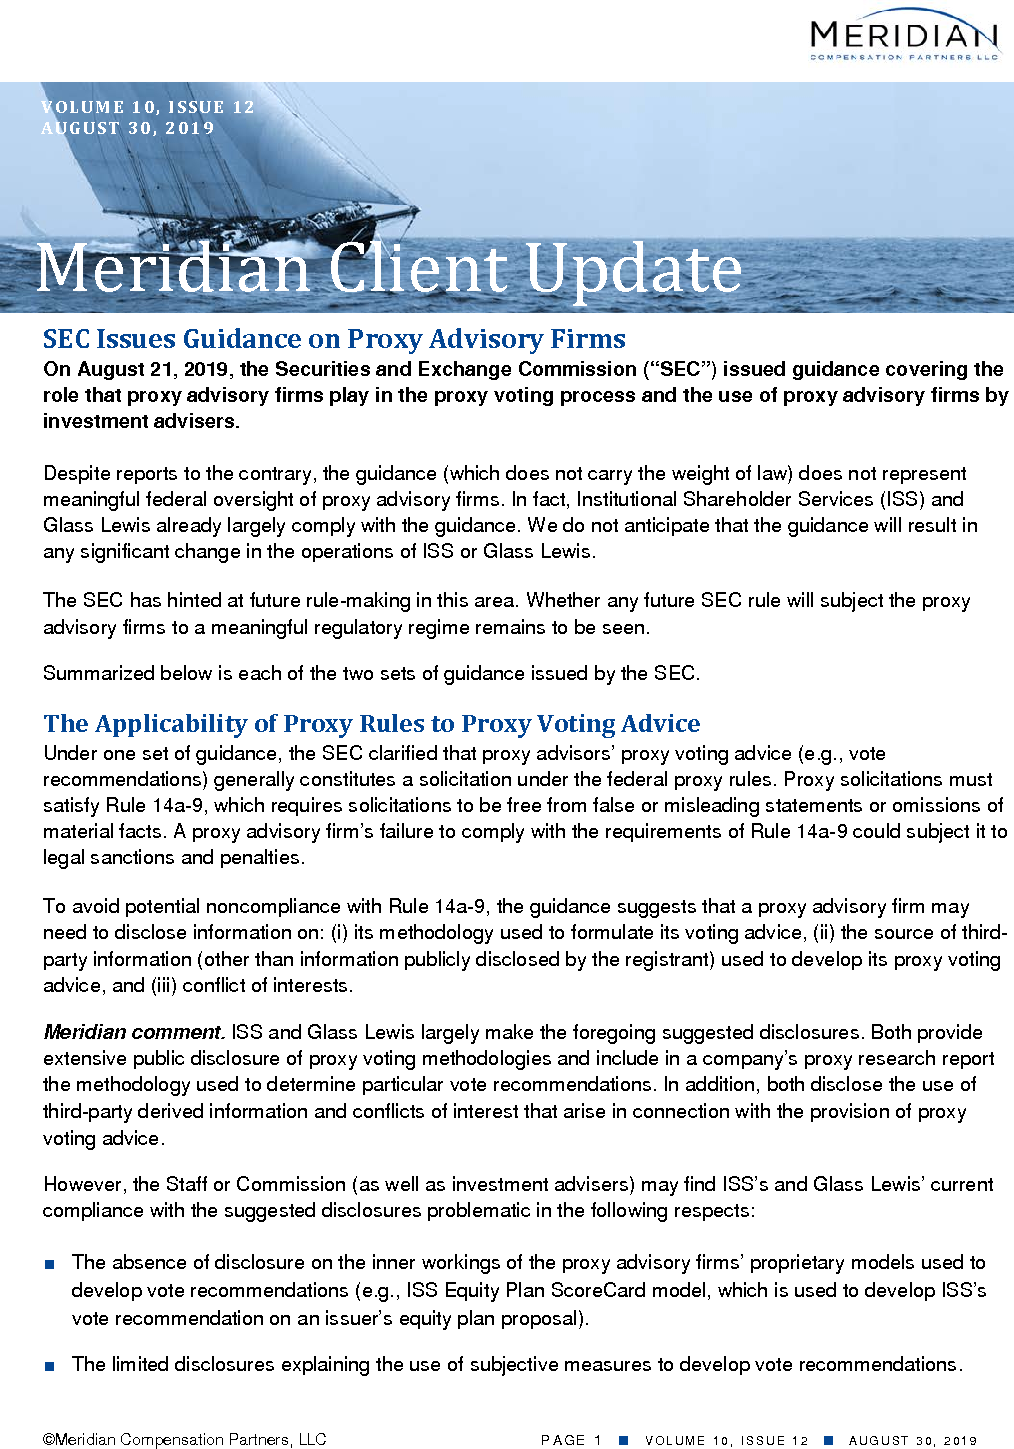 SEC Issues Guidance on Proxy Advisory Firms (PDF)